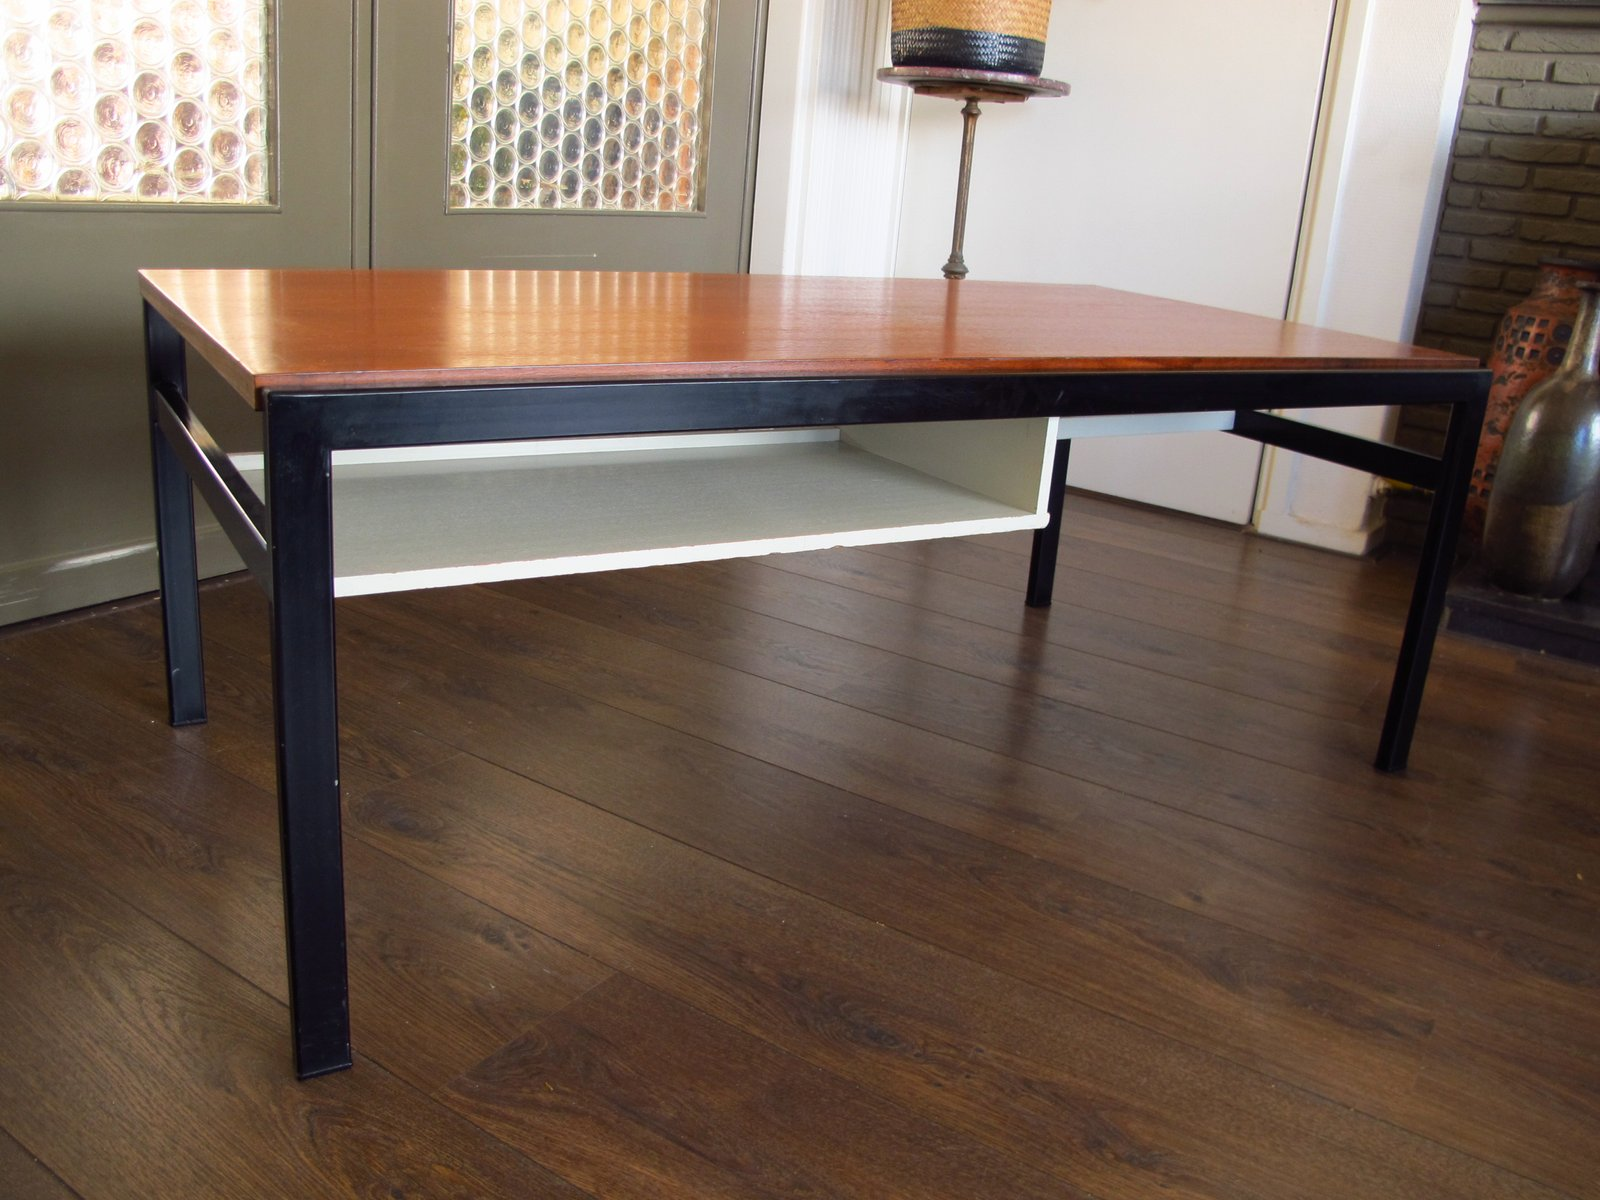 Japanese Dining Table For Sale Japanese Series Reversible Coffee Table By Cees Braakman